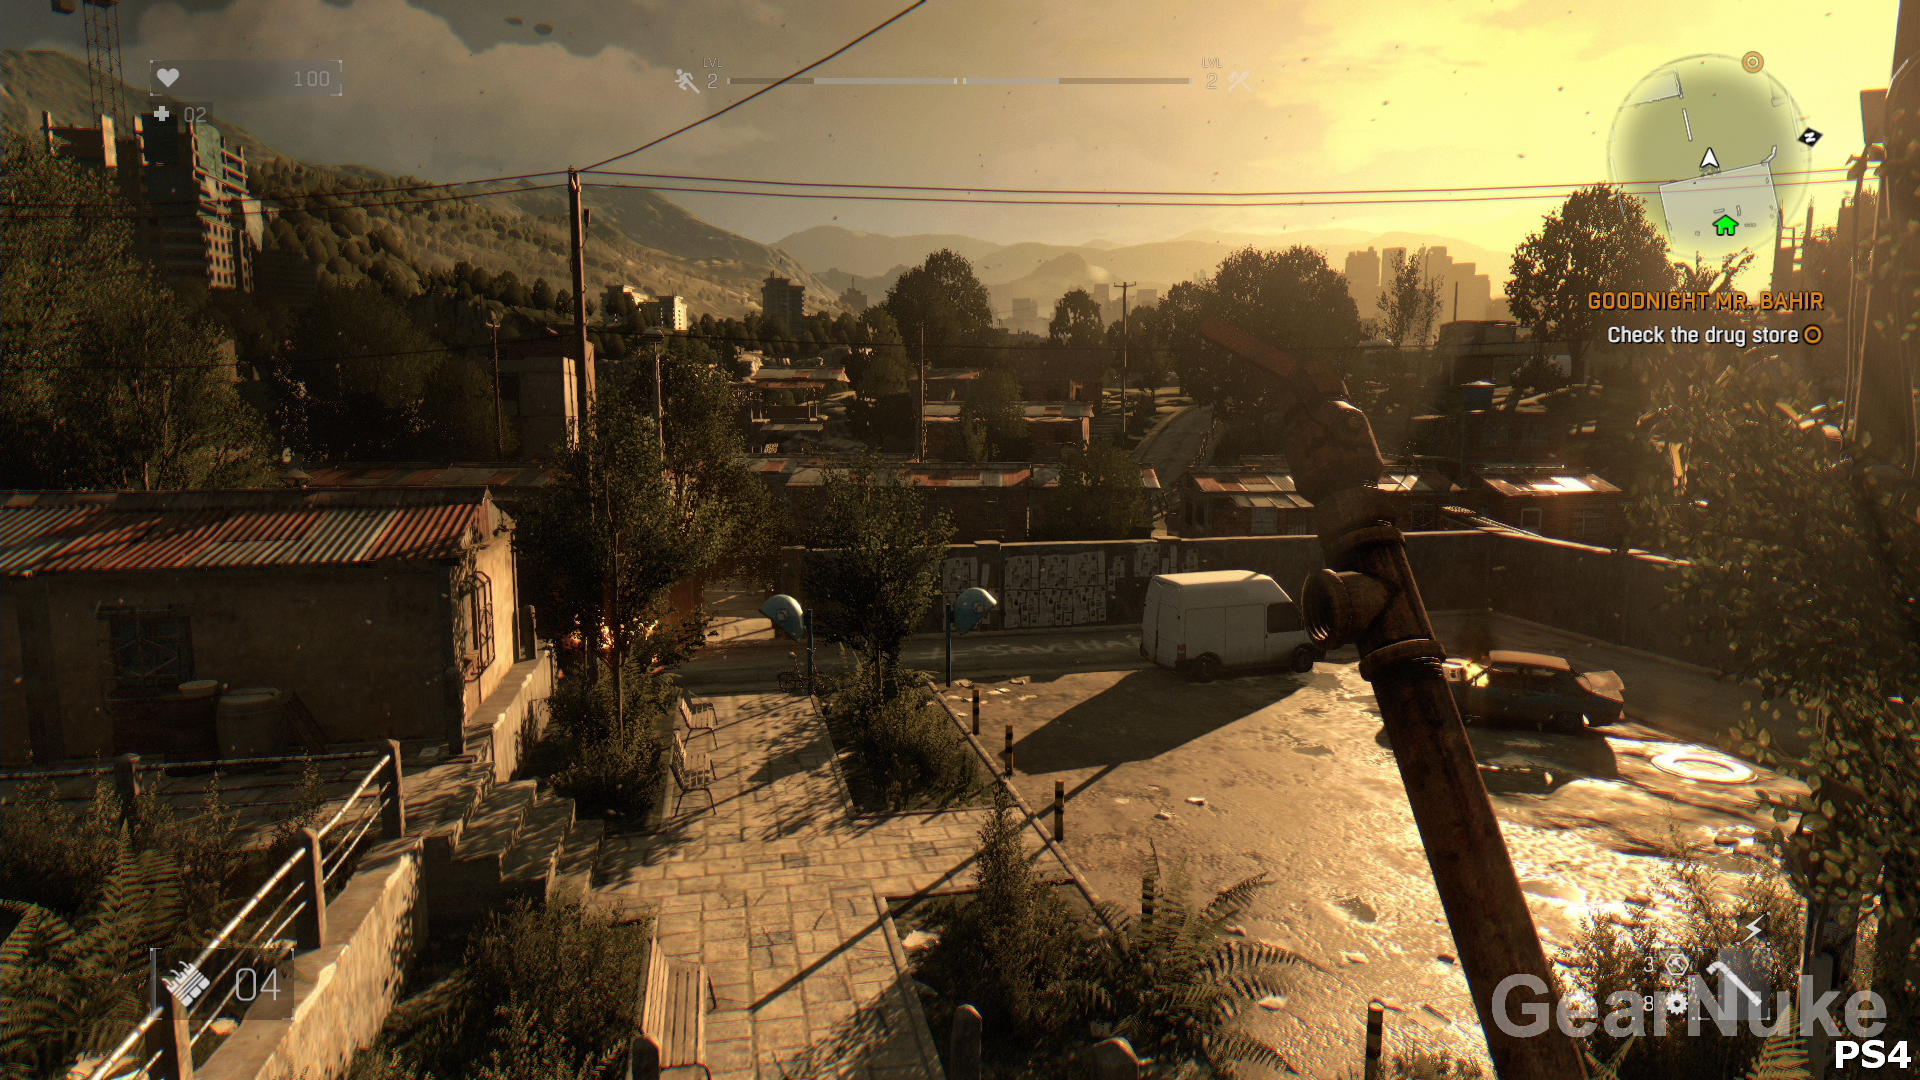 Dying Light PC HighLow vs PS4 Screenshot Comparison PS4 Holds 1920x1080